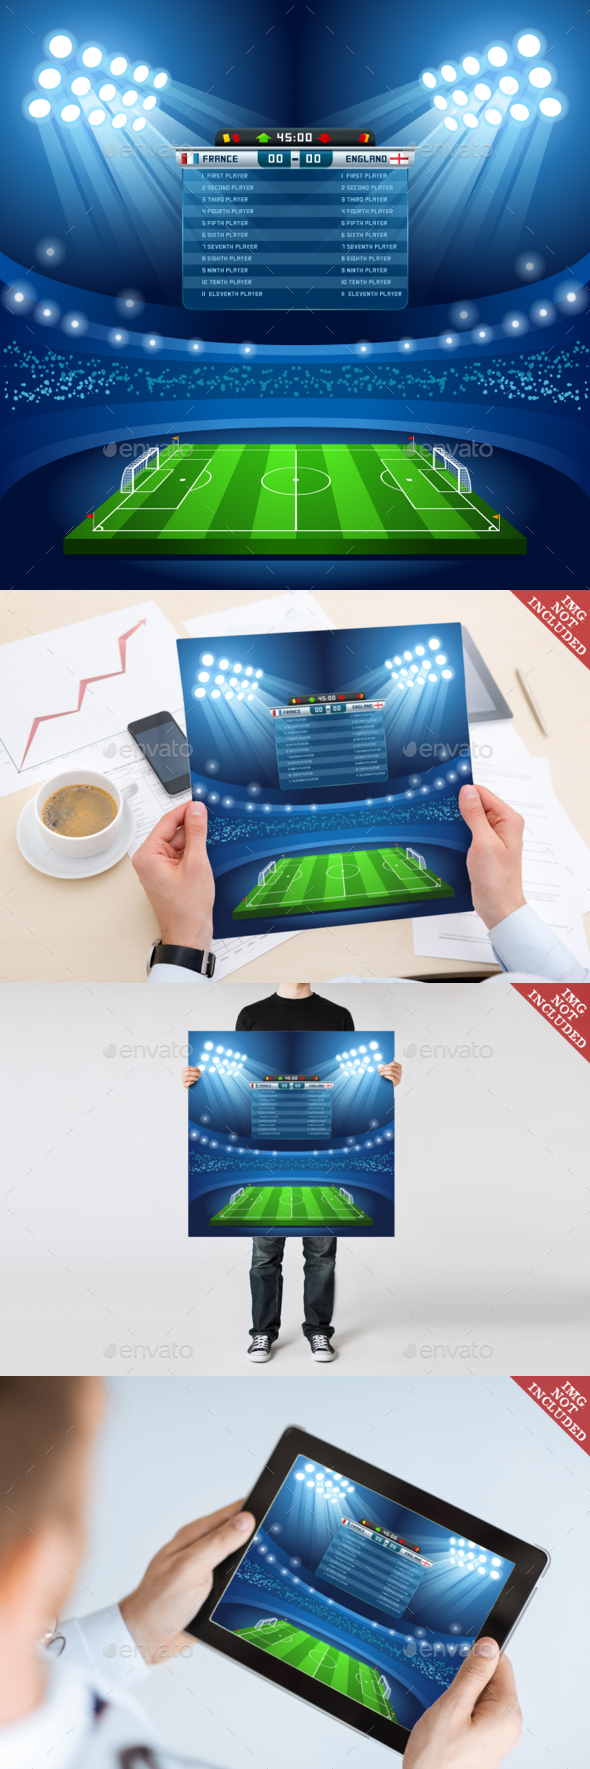 Football 01 Sport Background - Sports/Activity Conceptual